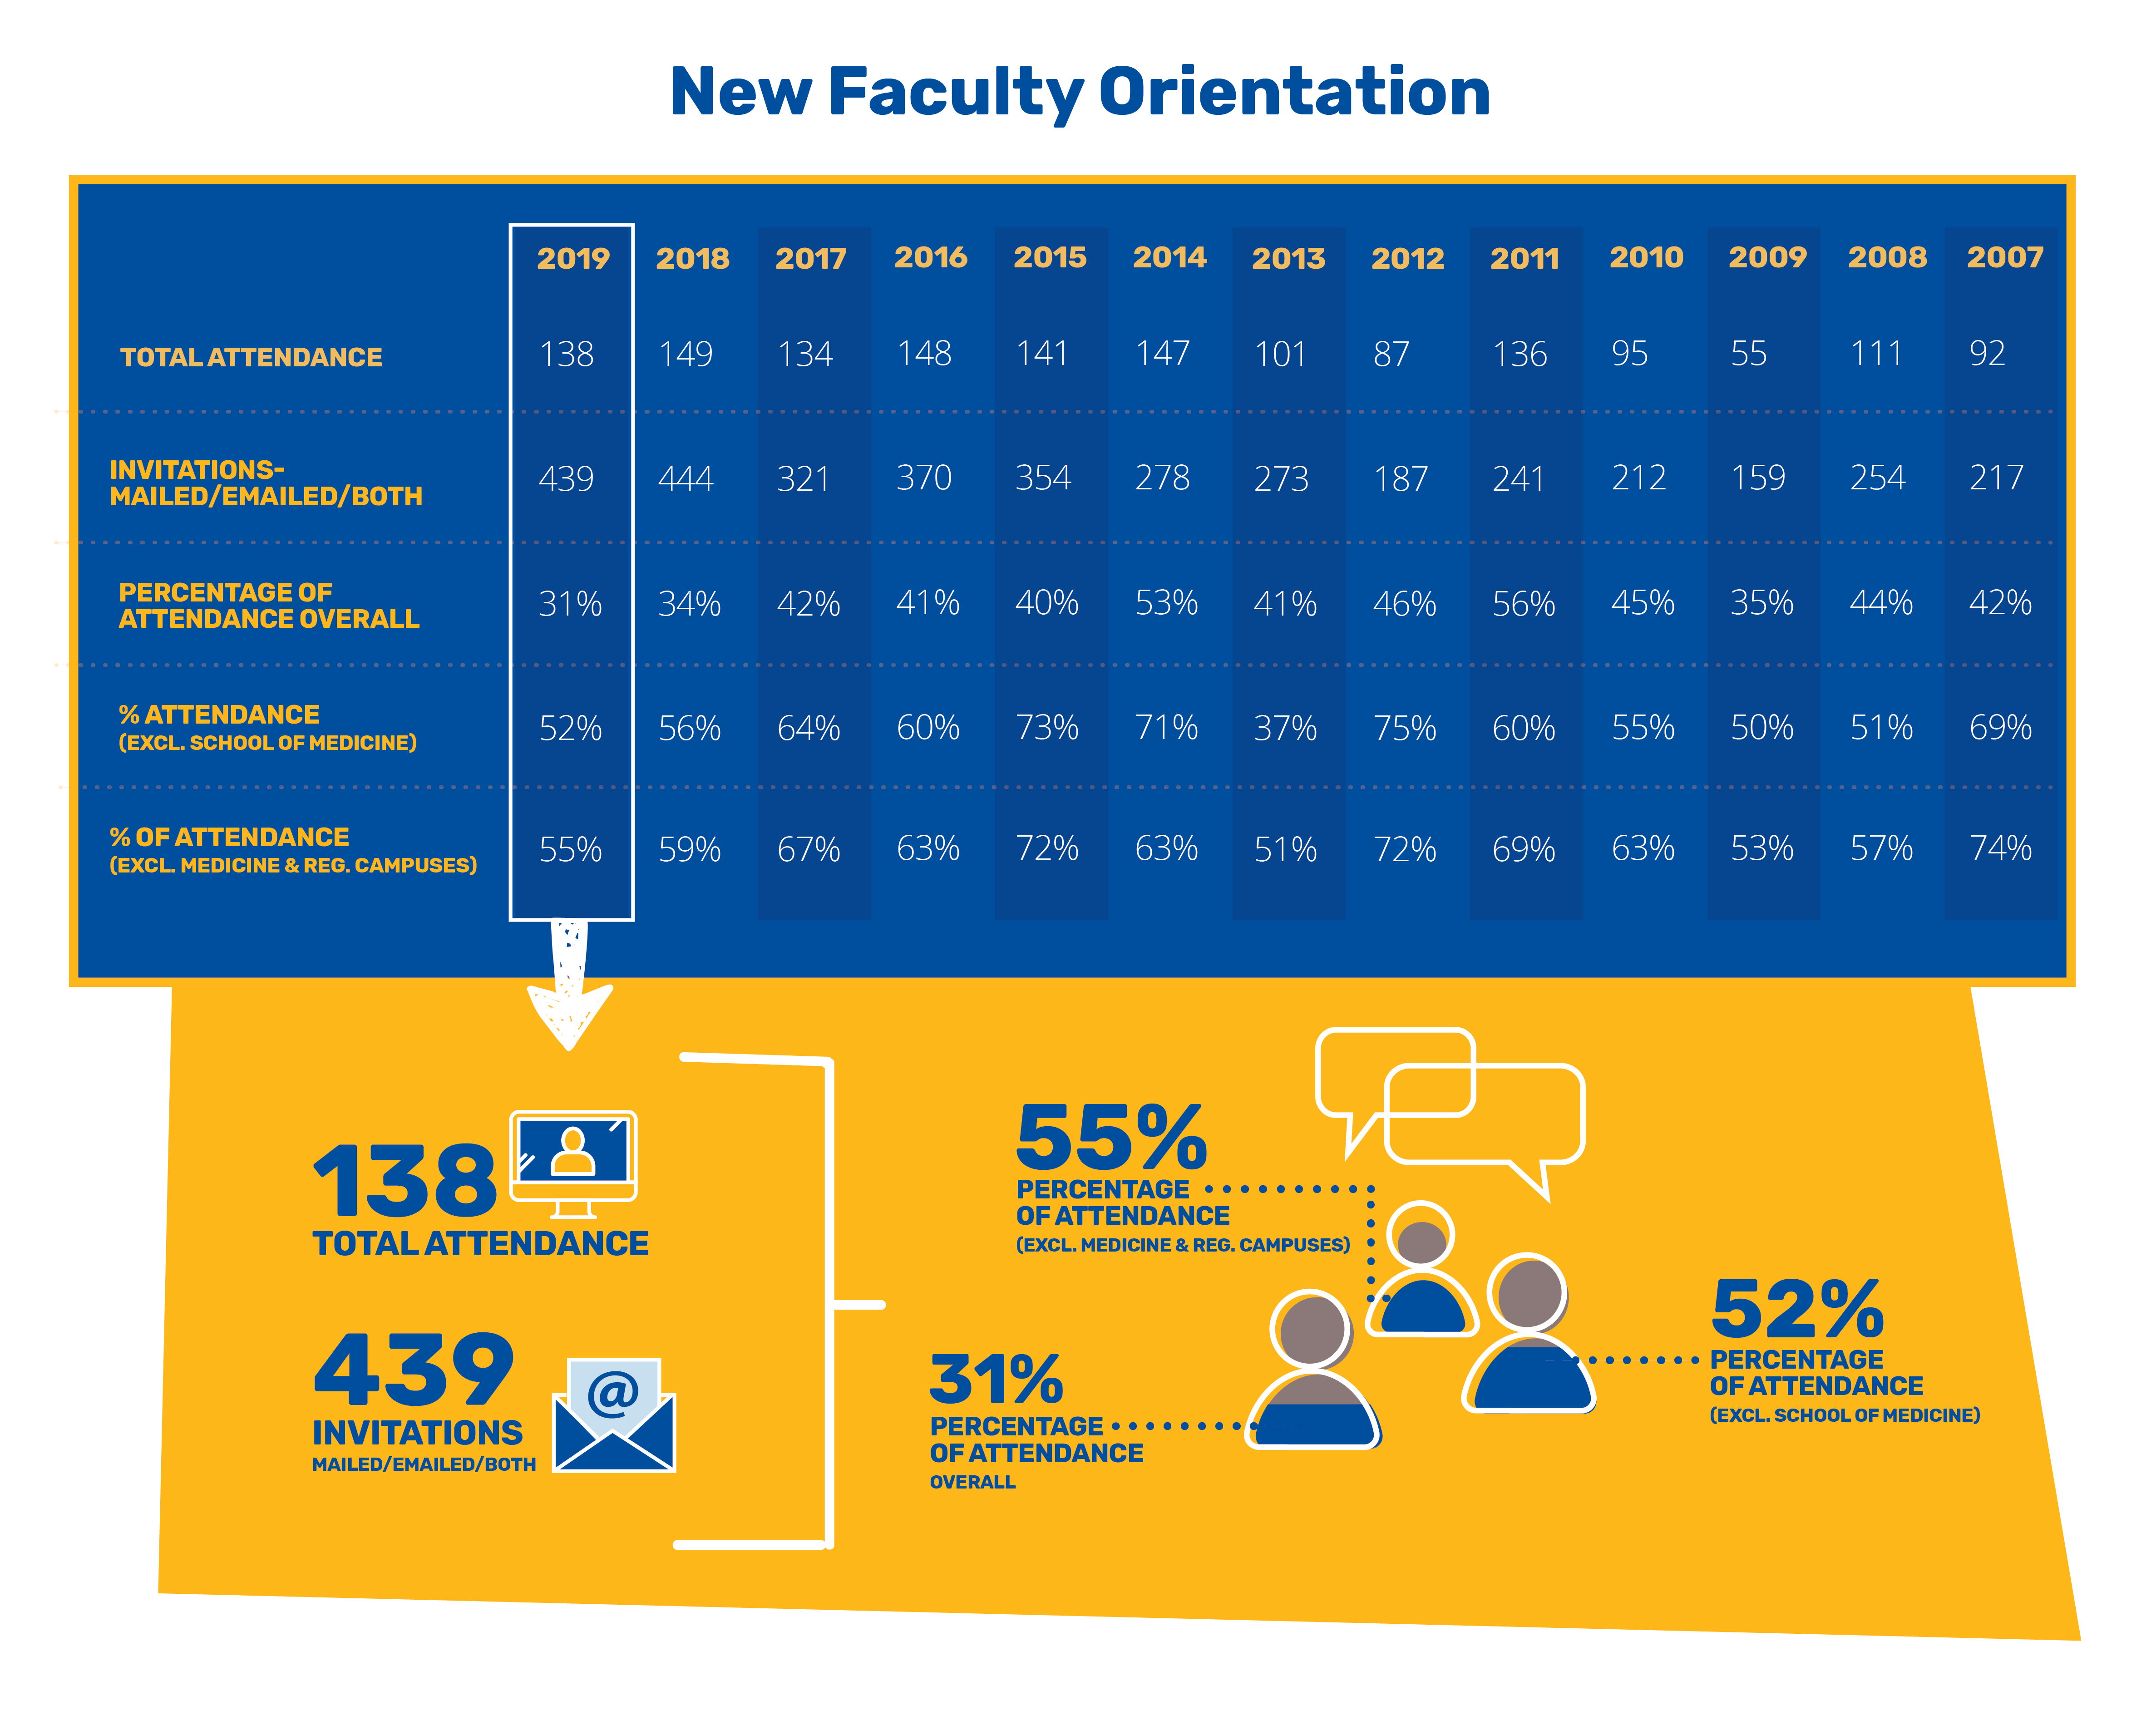 Annual Report 2020 - New Faculty Orientation